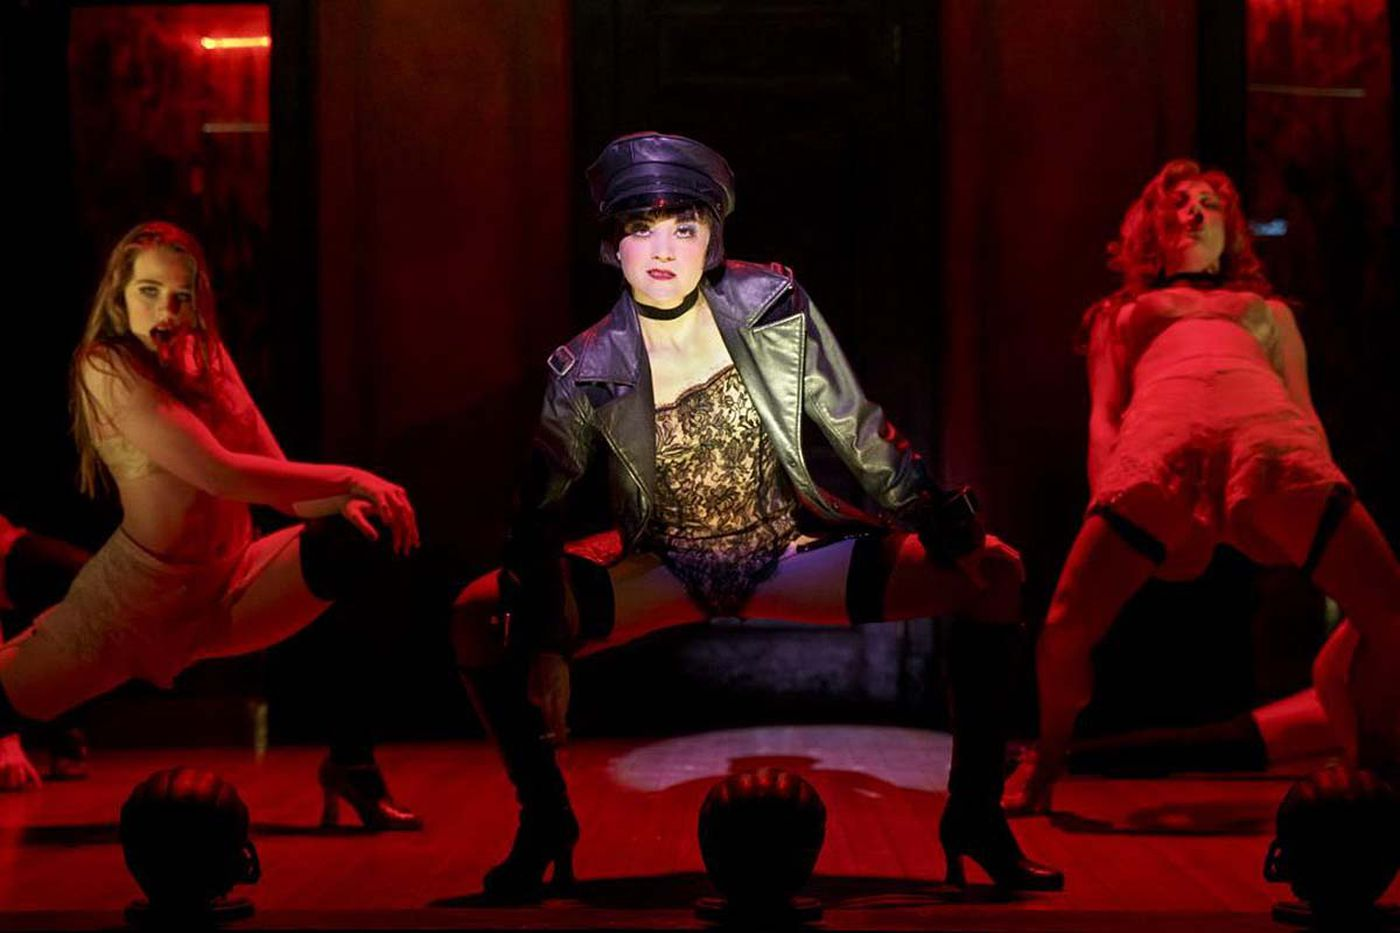 Get ready for 'Cabaret' at the Academy of Music by seeing these fabulous cabaret acts around Philly